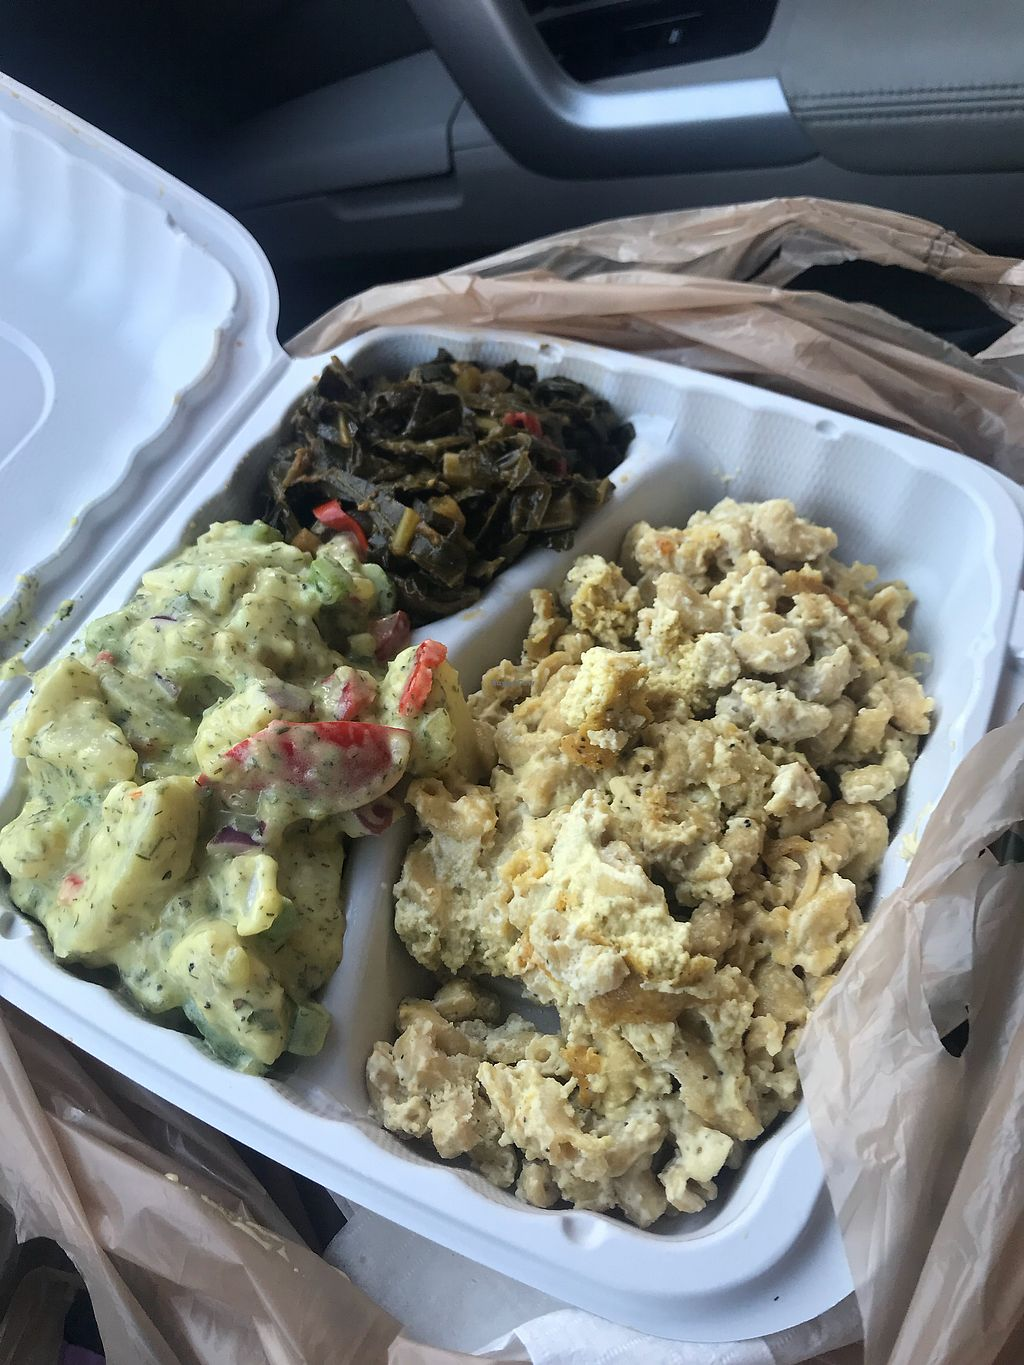 """Photo of The Land of Kush  by <a href=""""/members/profile/alysescotti"""">alysescotti</a> <br/>Mac & Cheese - Collard Greens - Potato Salad  <br/> April 16, 2018  - <a href='/contact/abuse/image/25073/386596'>Report</a>"""